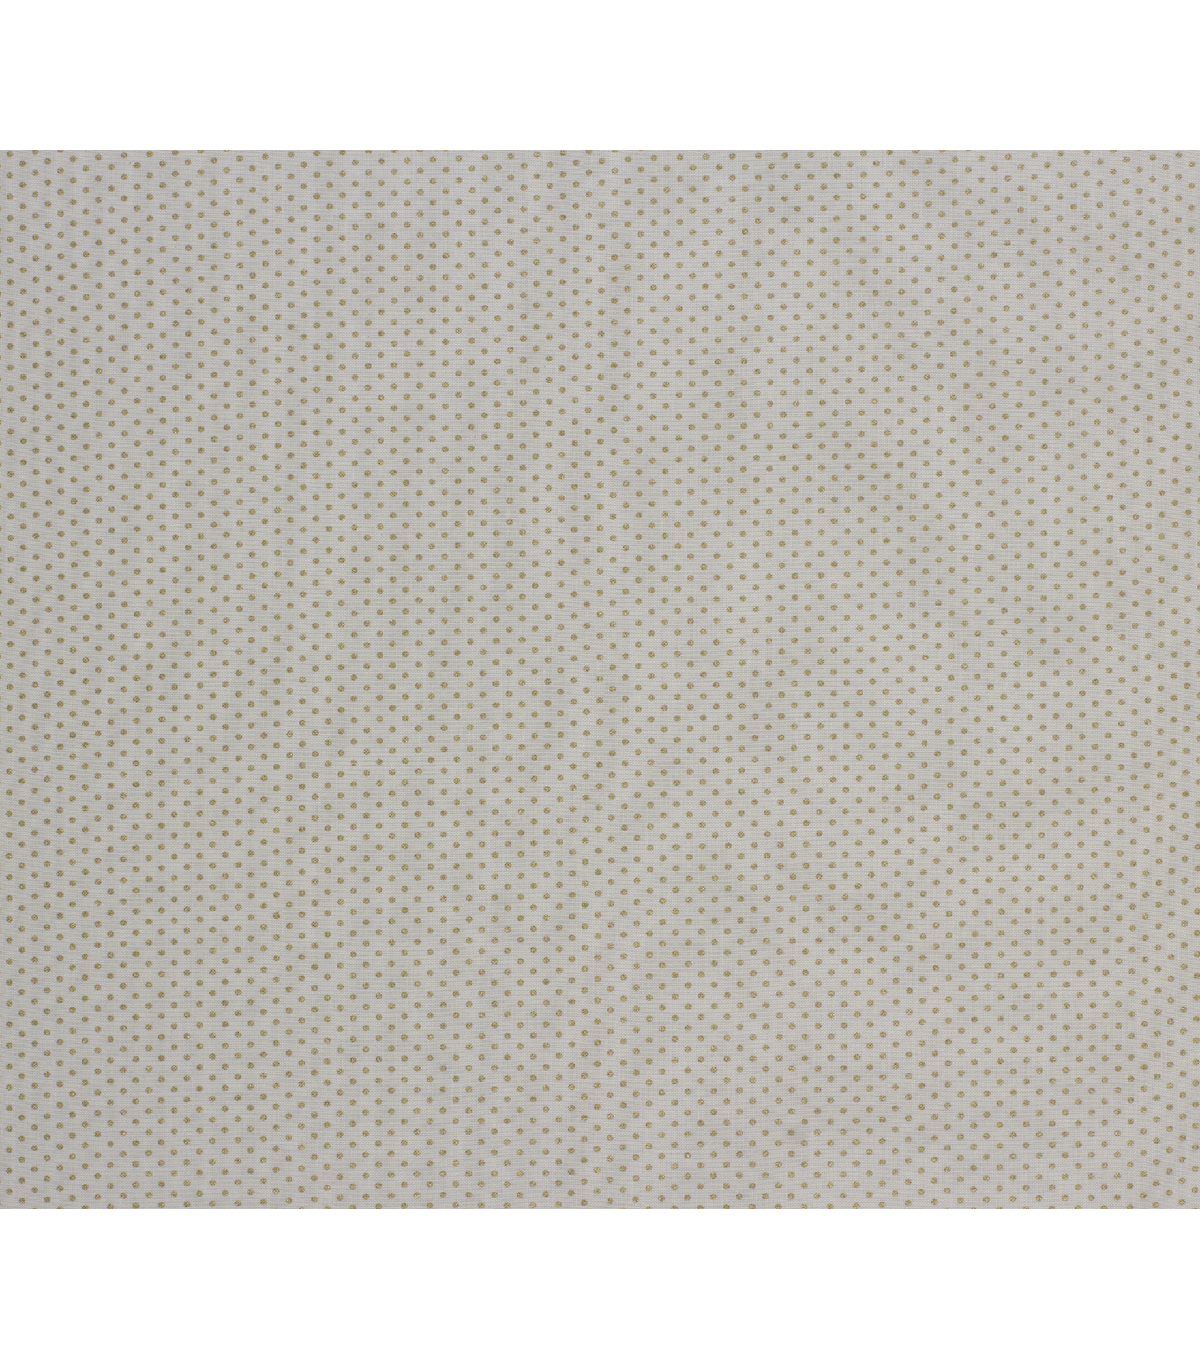 Harvest Cotton Fabric-Ivory Dots Metallic